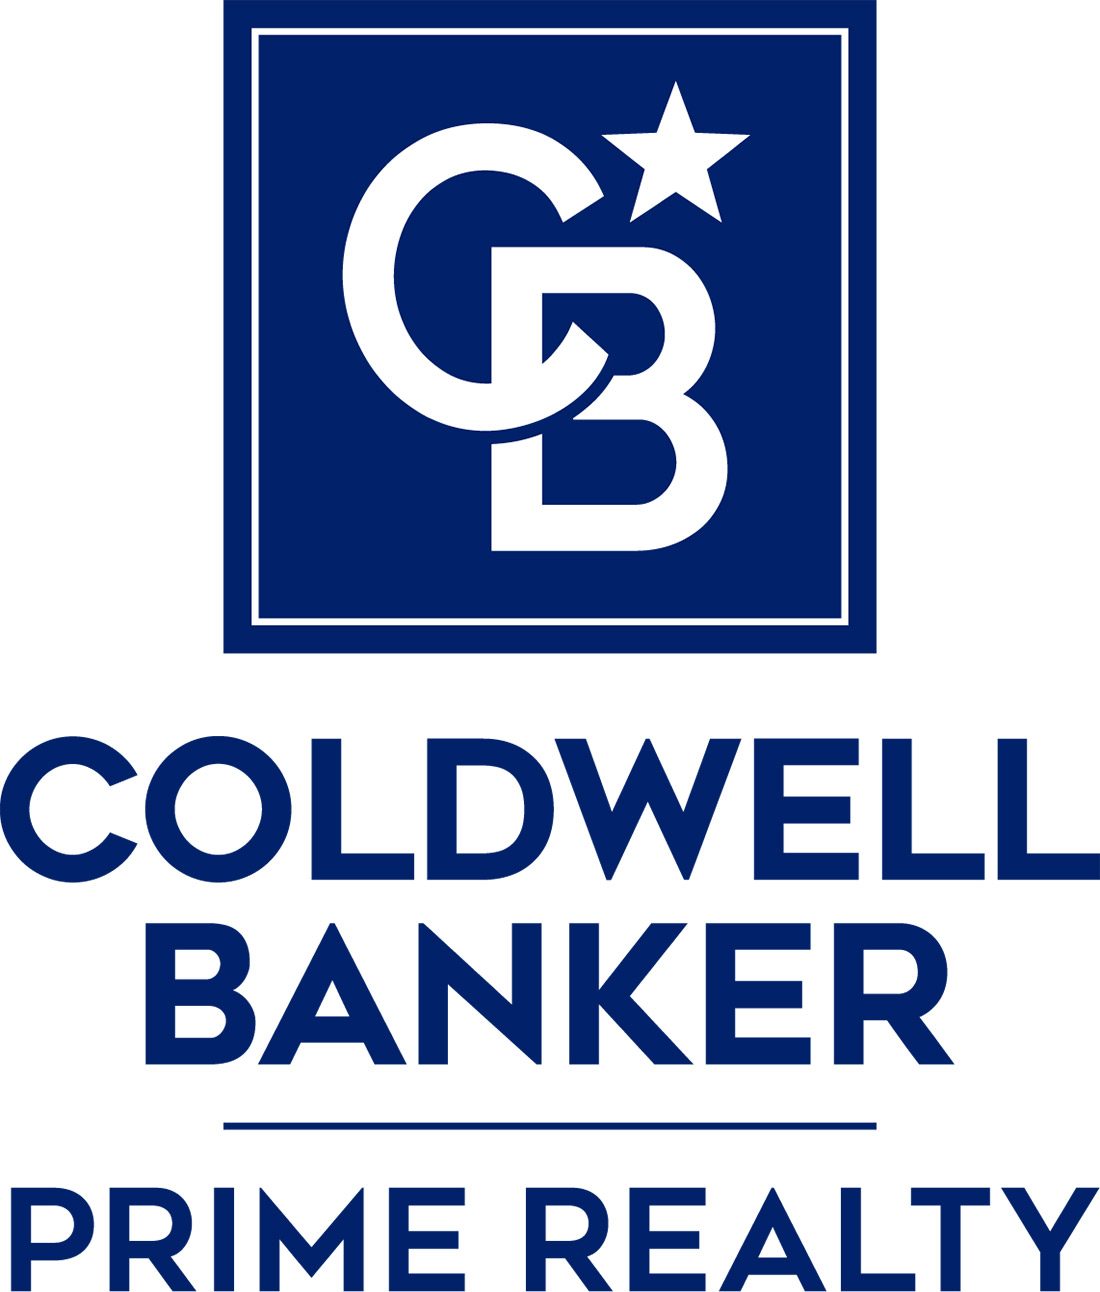 Rob Williams - Coldwell Banker Prime Realty - Carbondale, IL Logo